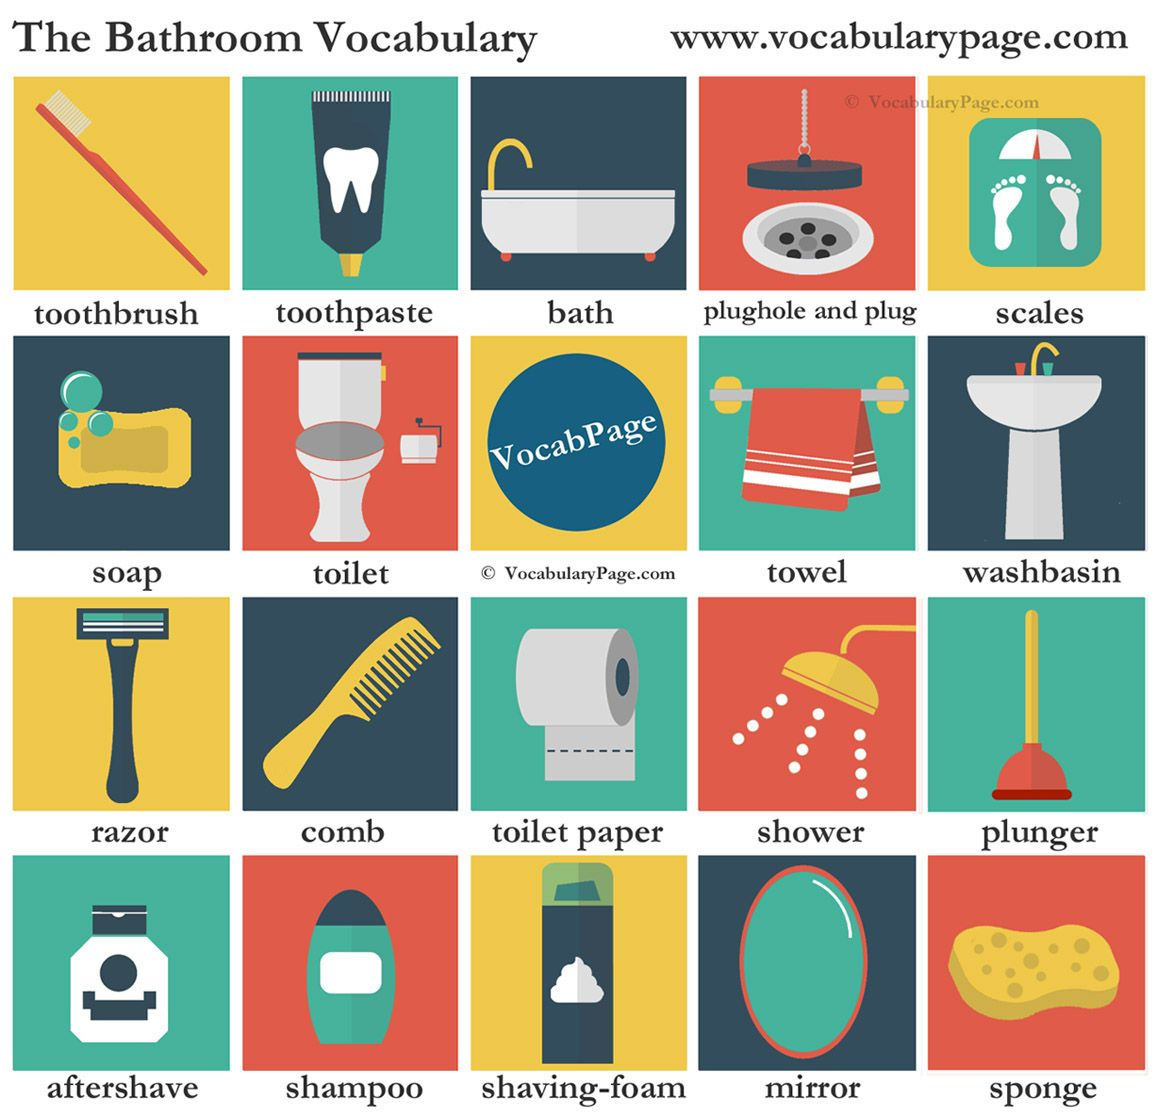 Bathroom vocabulary | Clase de inglés, Educacion ...